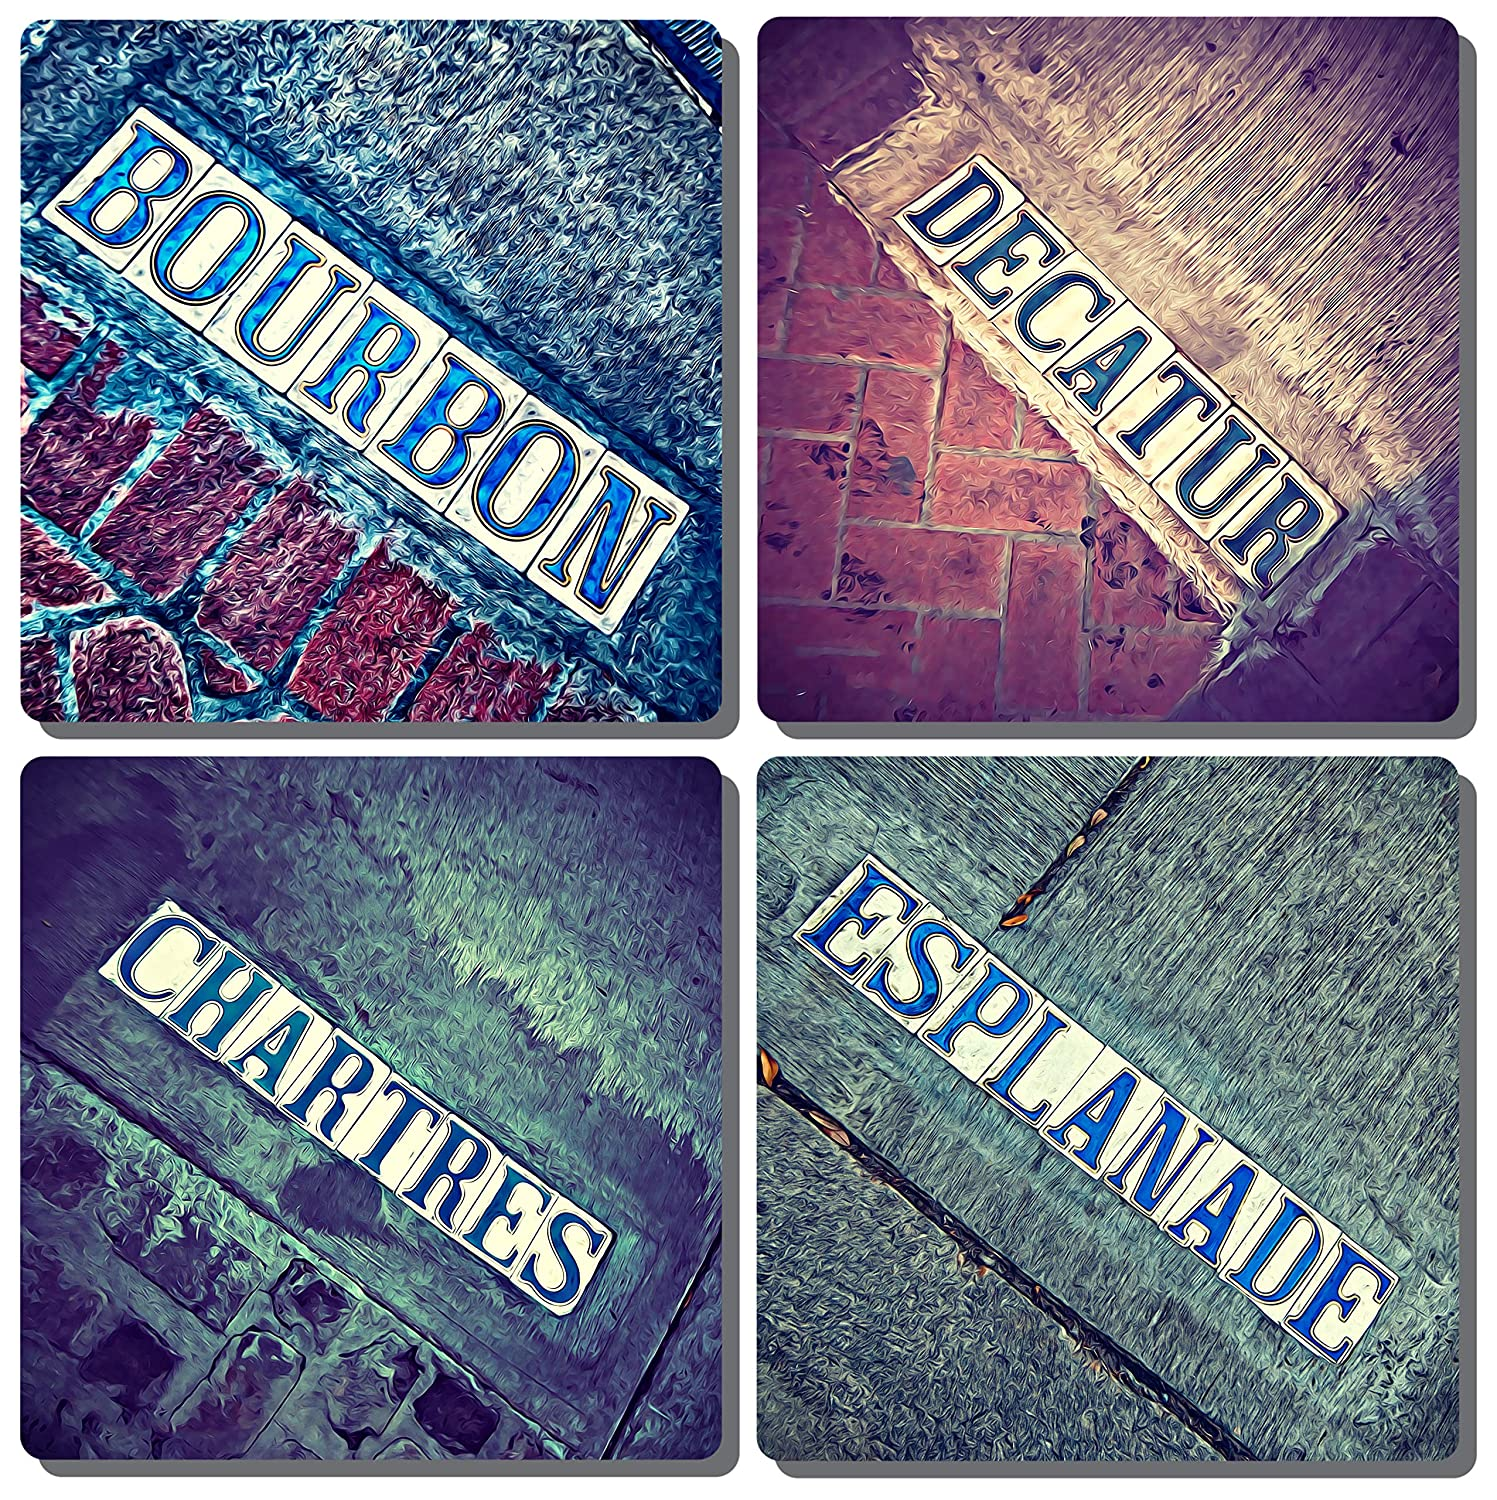 New Orleans French Quarter Stone Drink Coasters. Set of 4 iconic tiled street signs. Tumbled Porcelain, Cork-backed.